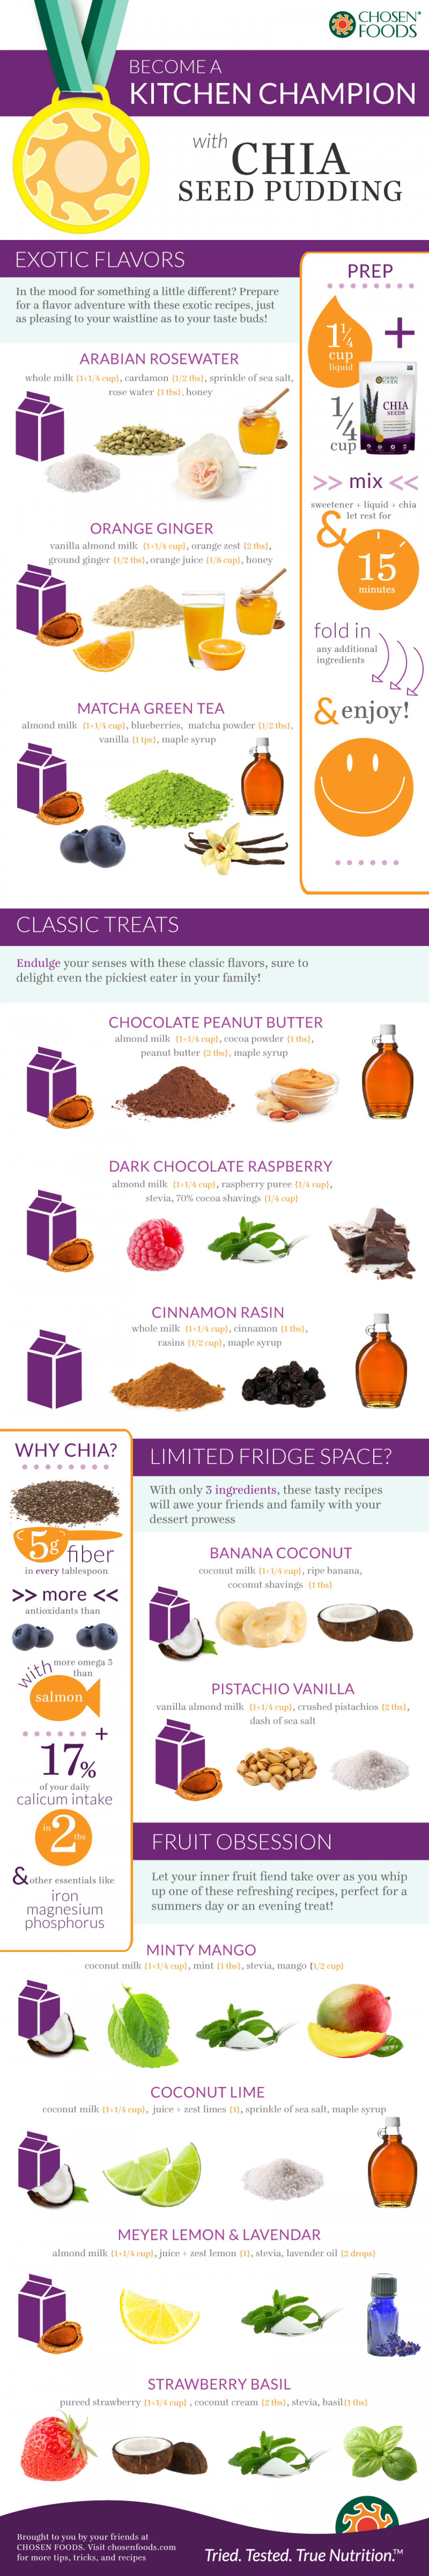 Become A Kitchen Champion With Chia Seed Pudding Infographic